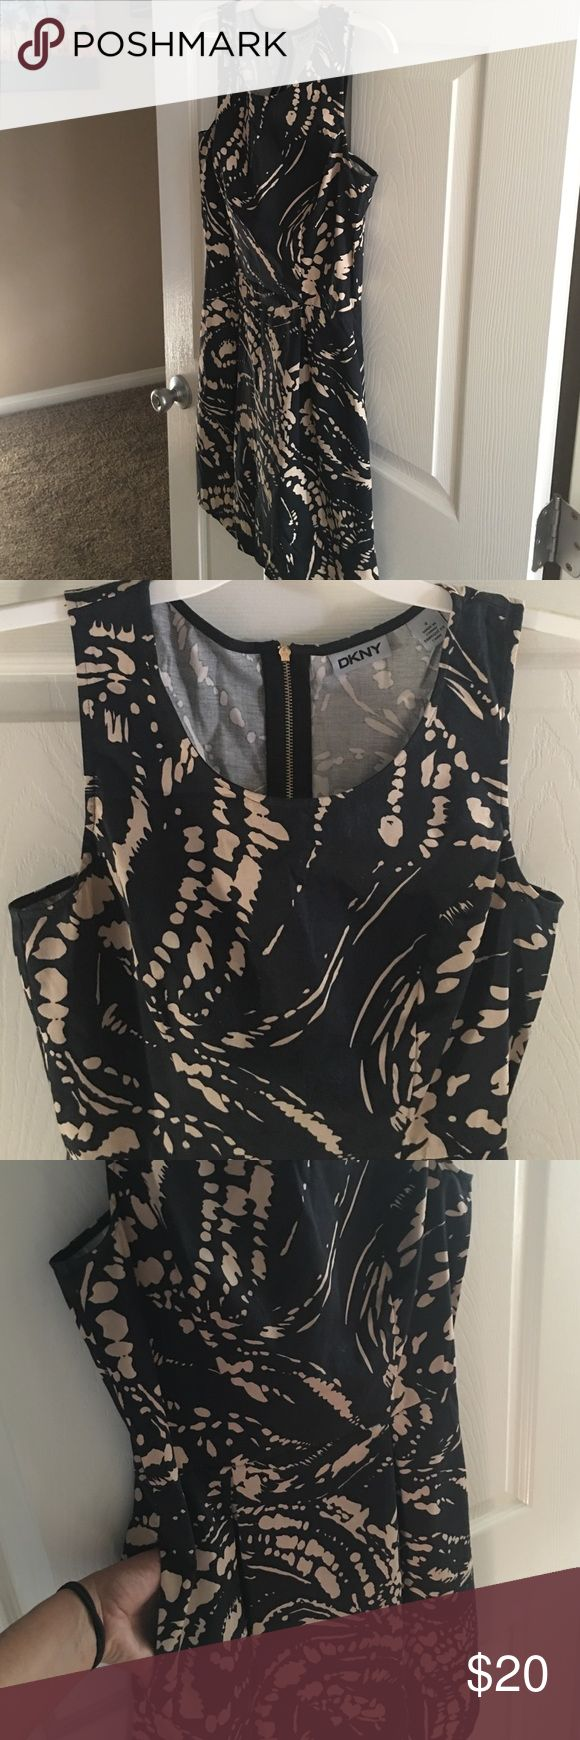 DKNY SHIFT DRESS Smart sexy and fun. This DKNY dress is perfect for the office. Front pleats and side pockets! Gold zipper down the back. Worn gently once or twice. Like new!  Black with tan detail DKNY Dresses Midi